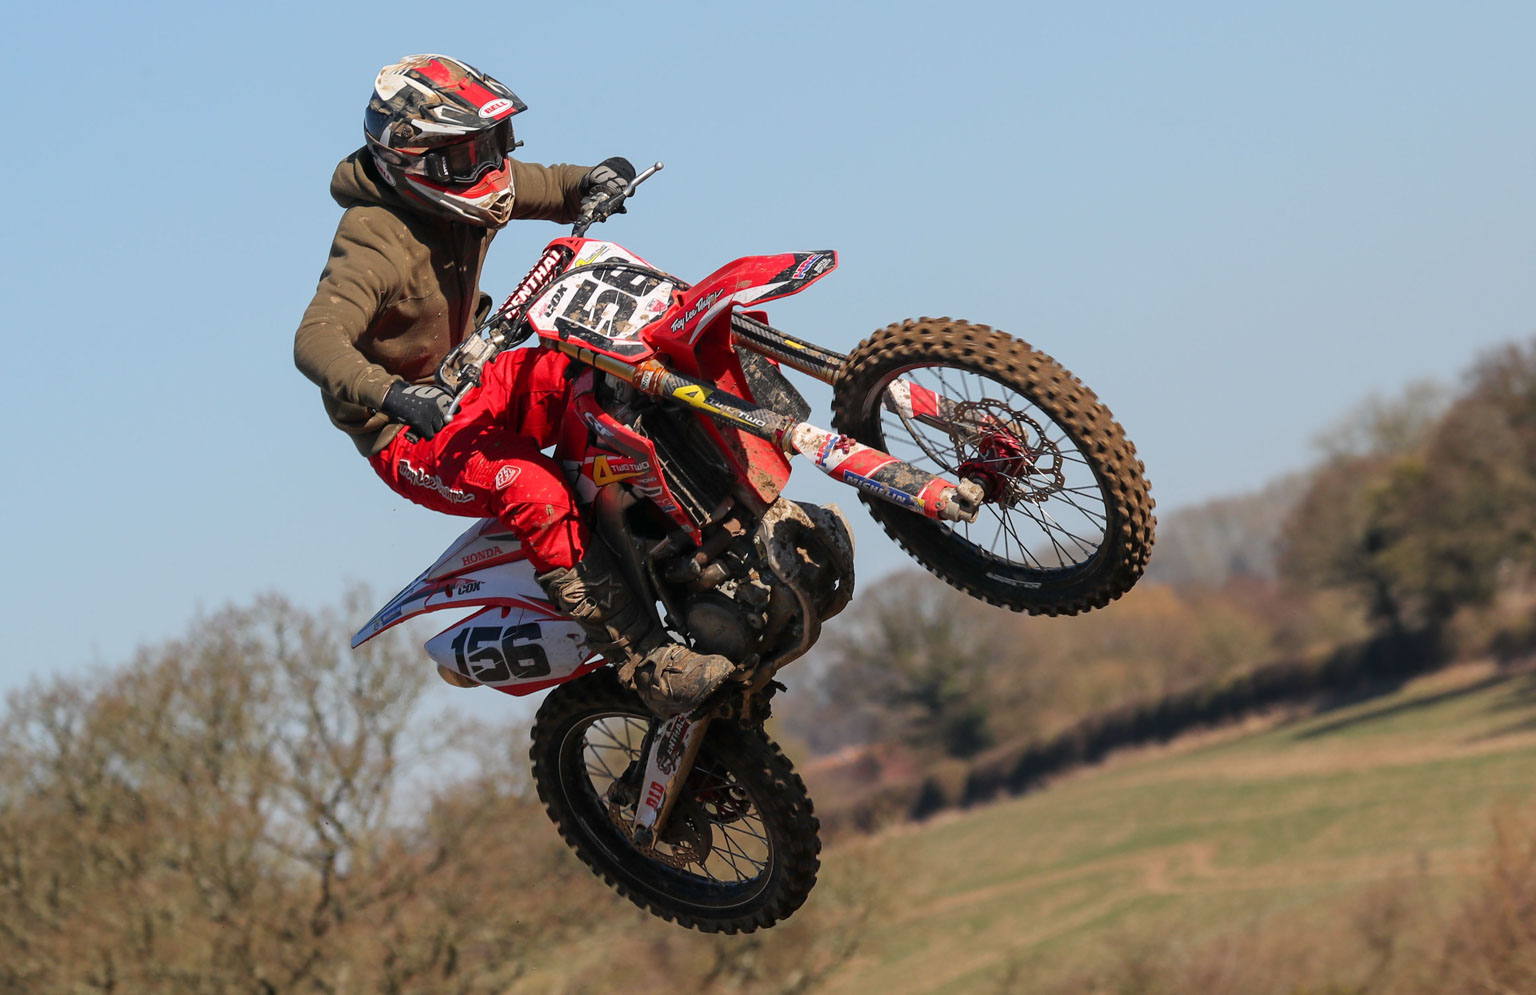 Alfie Cox took his Honda to third